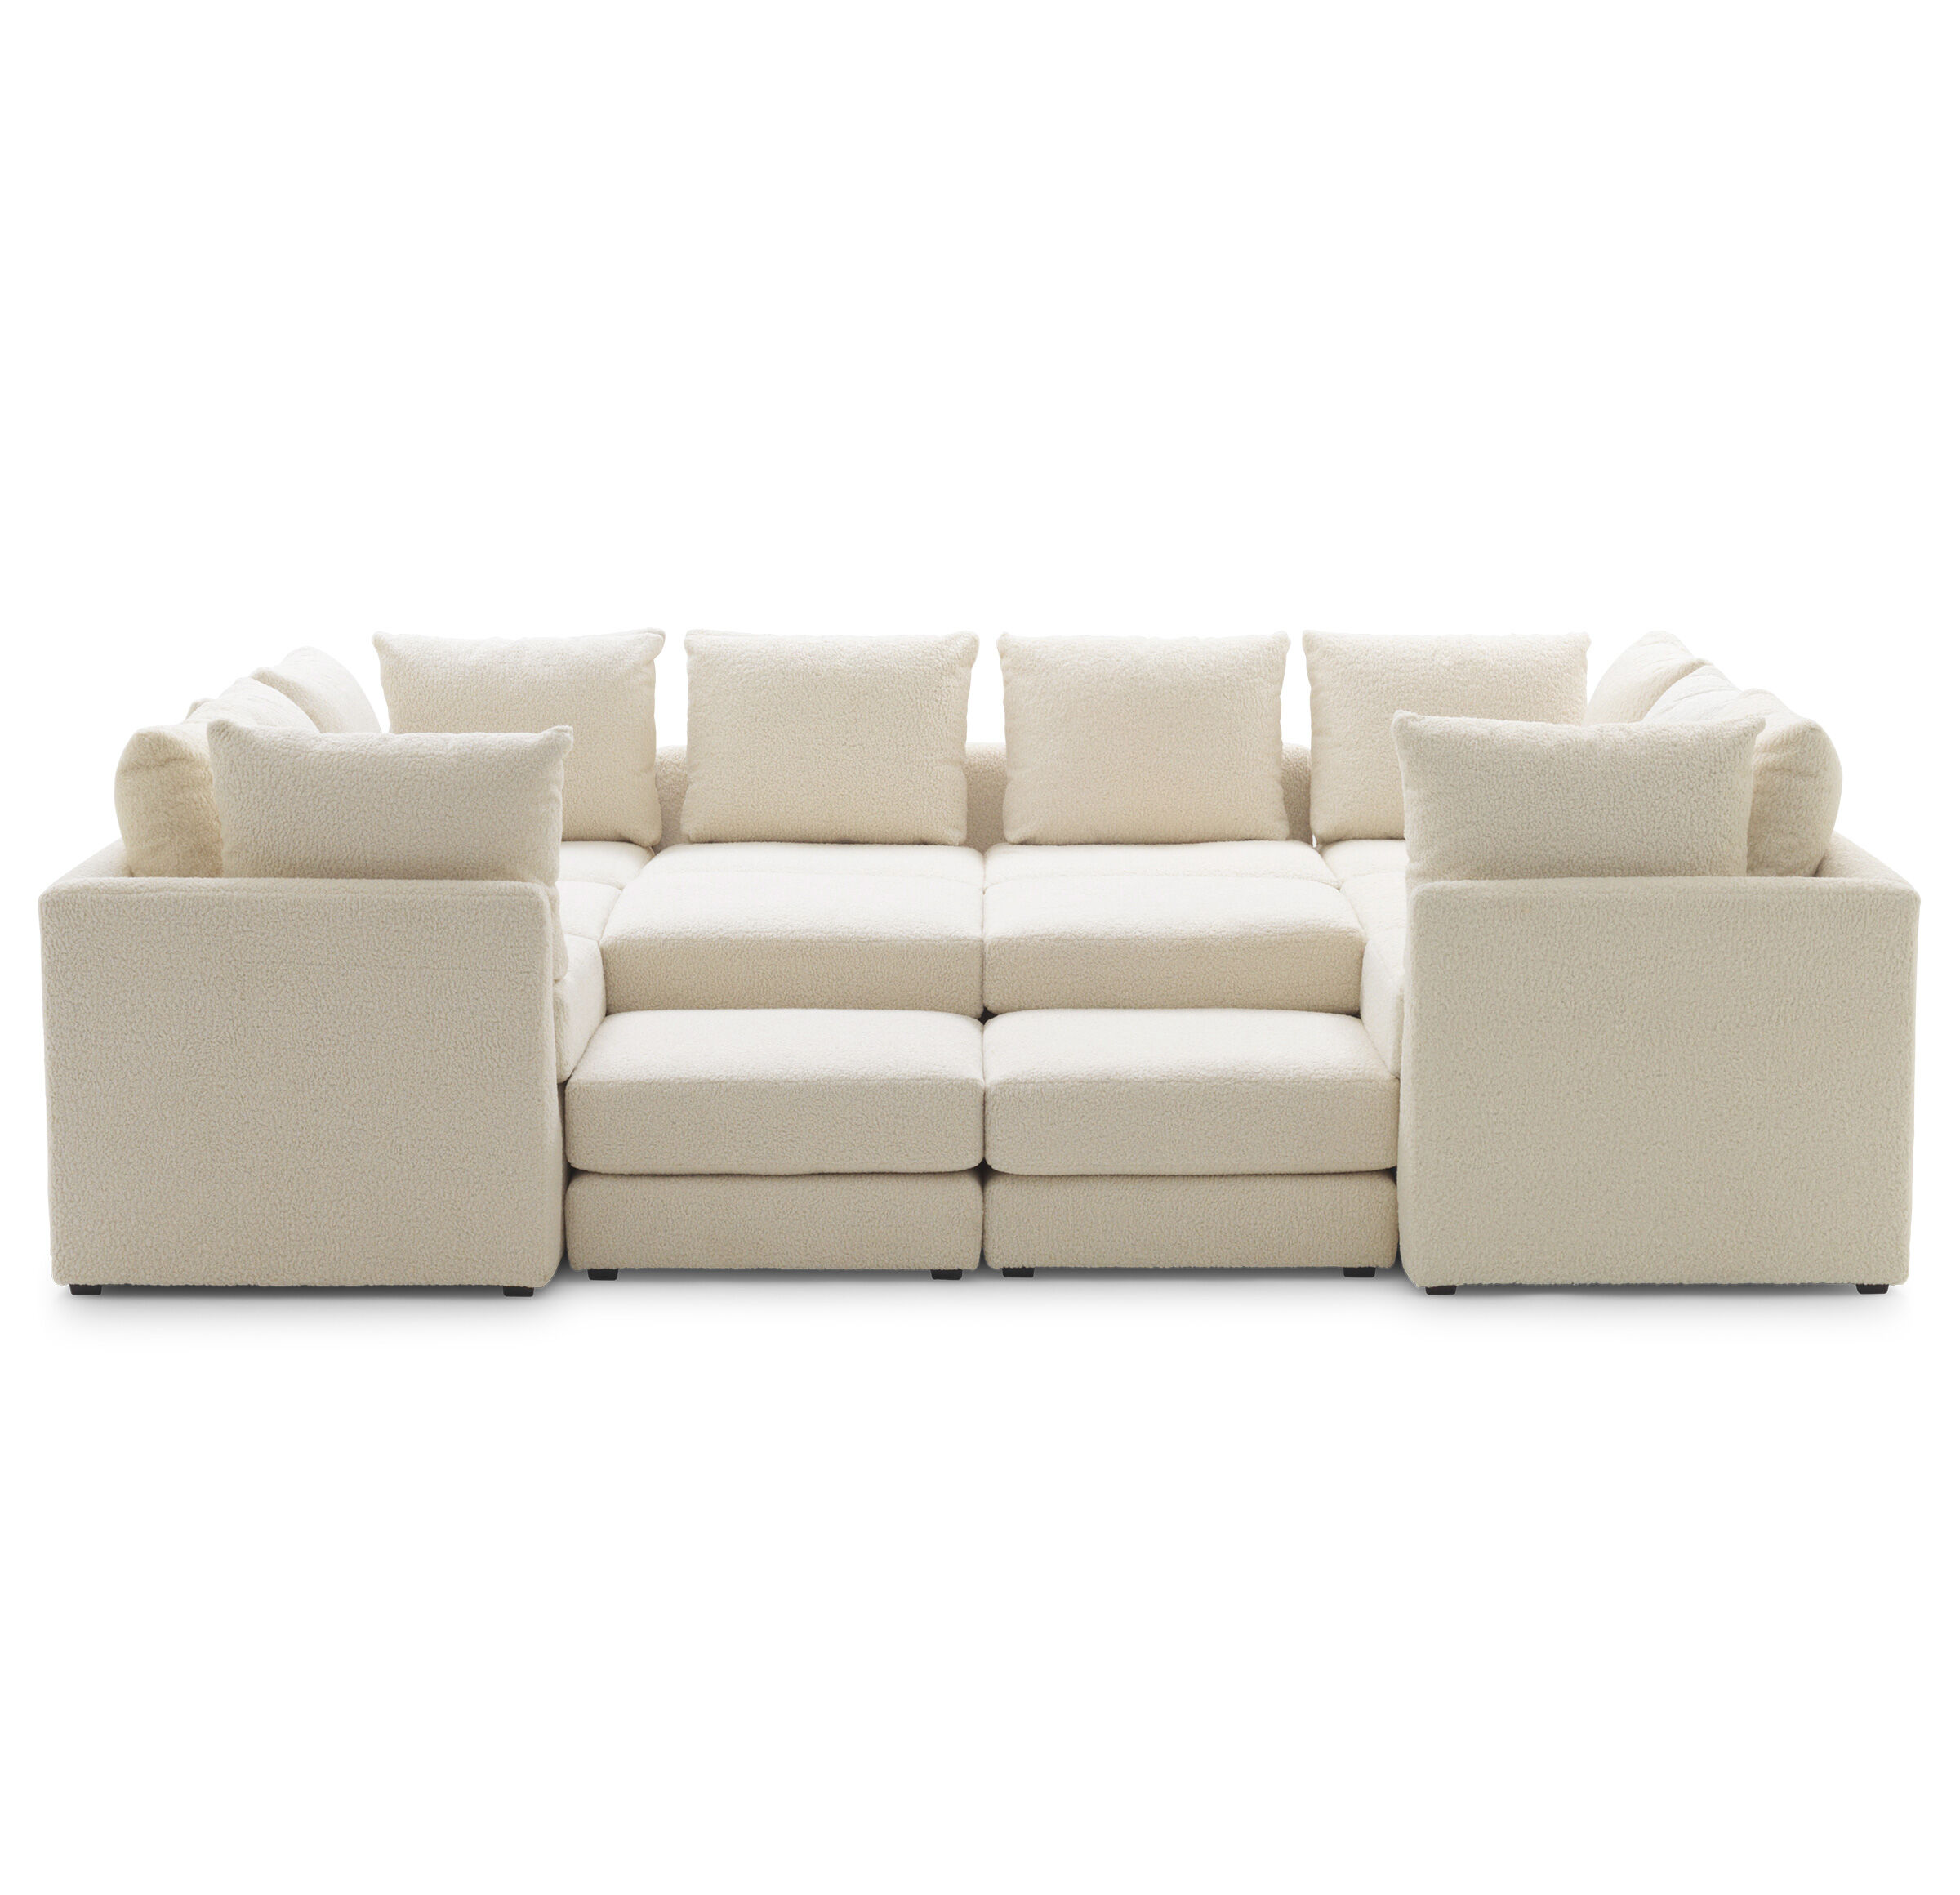 Dr Pitt 7 Pc Sectional Sofa Mitchell Gold Bob Williams